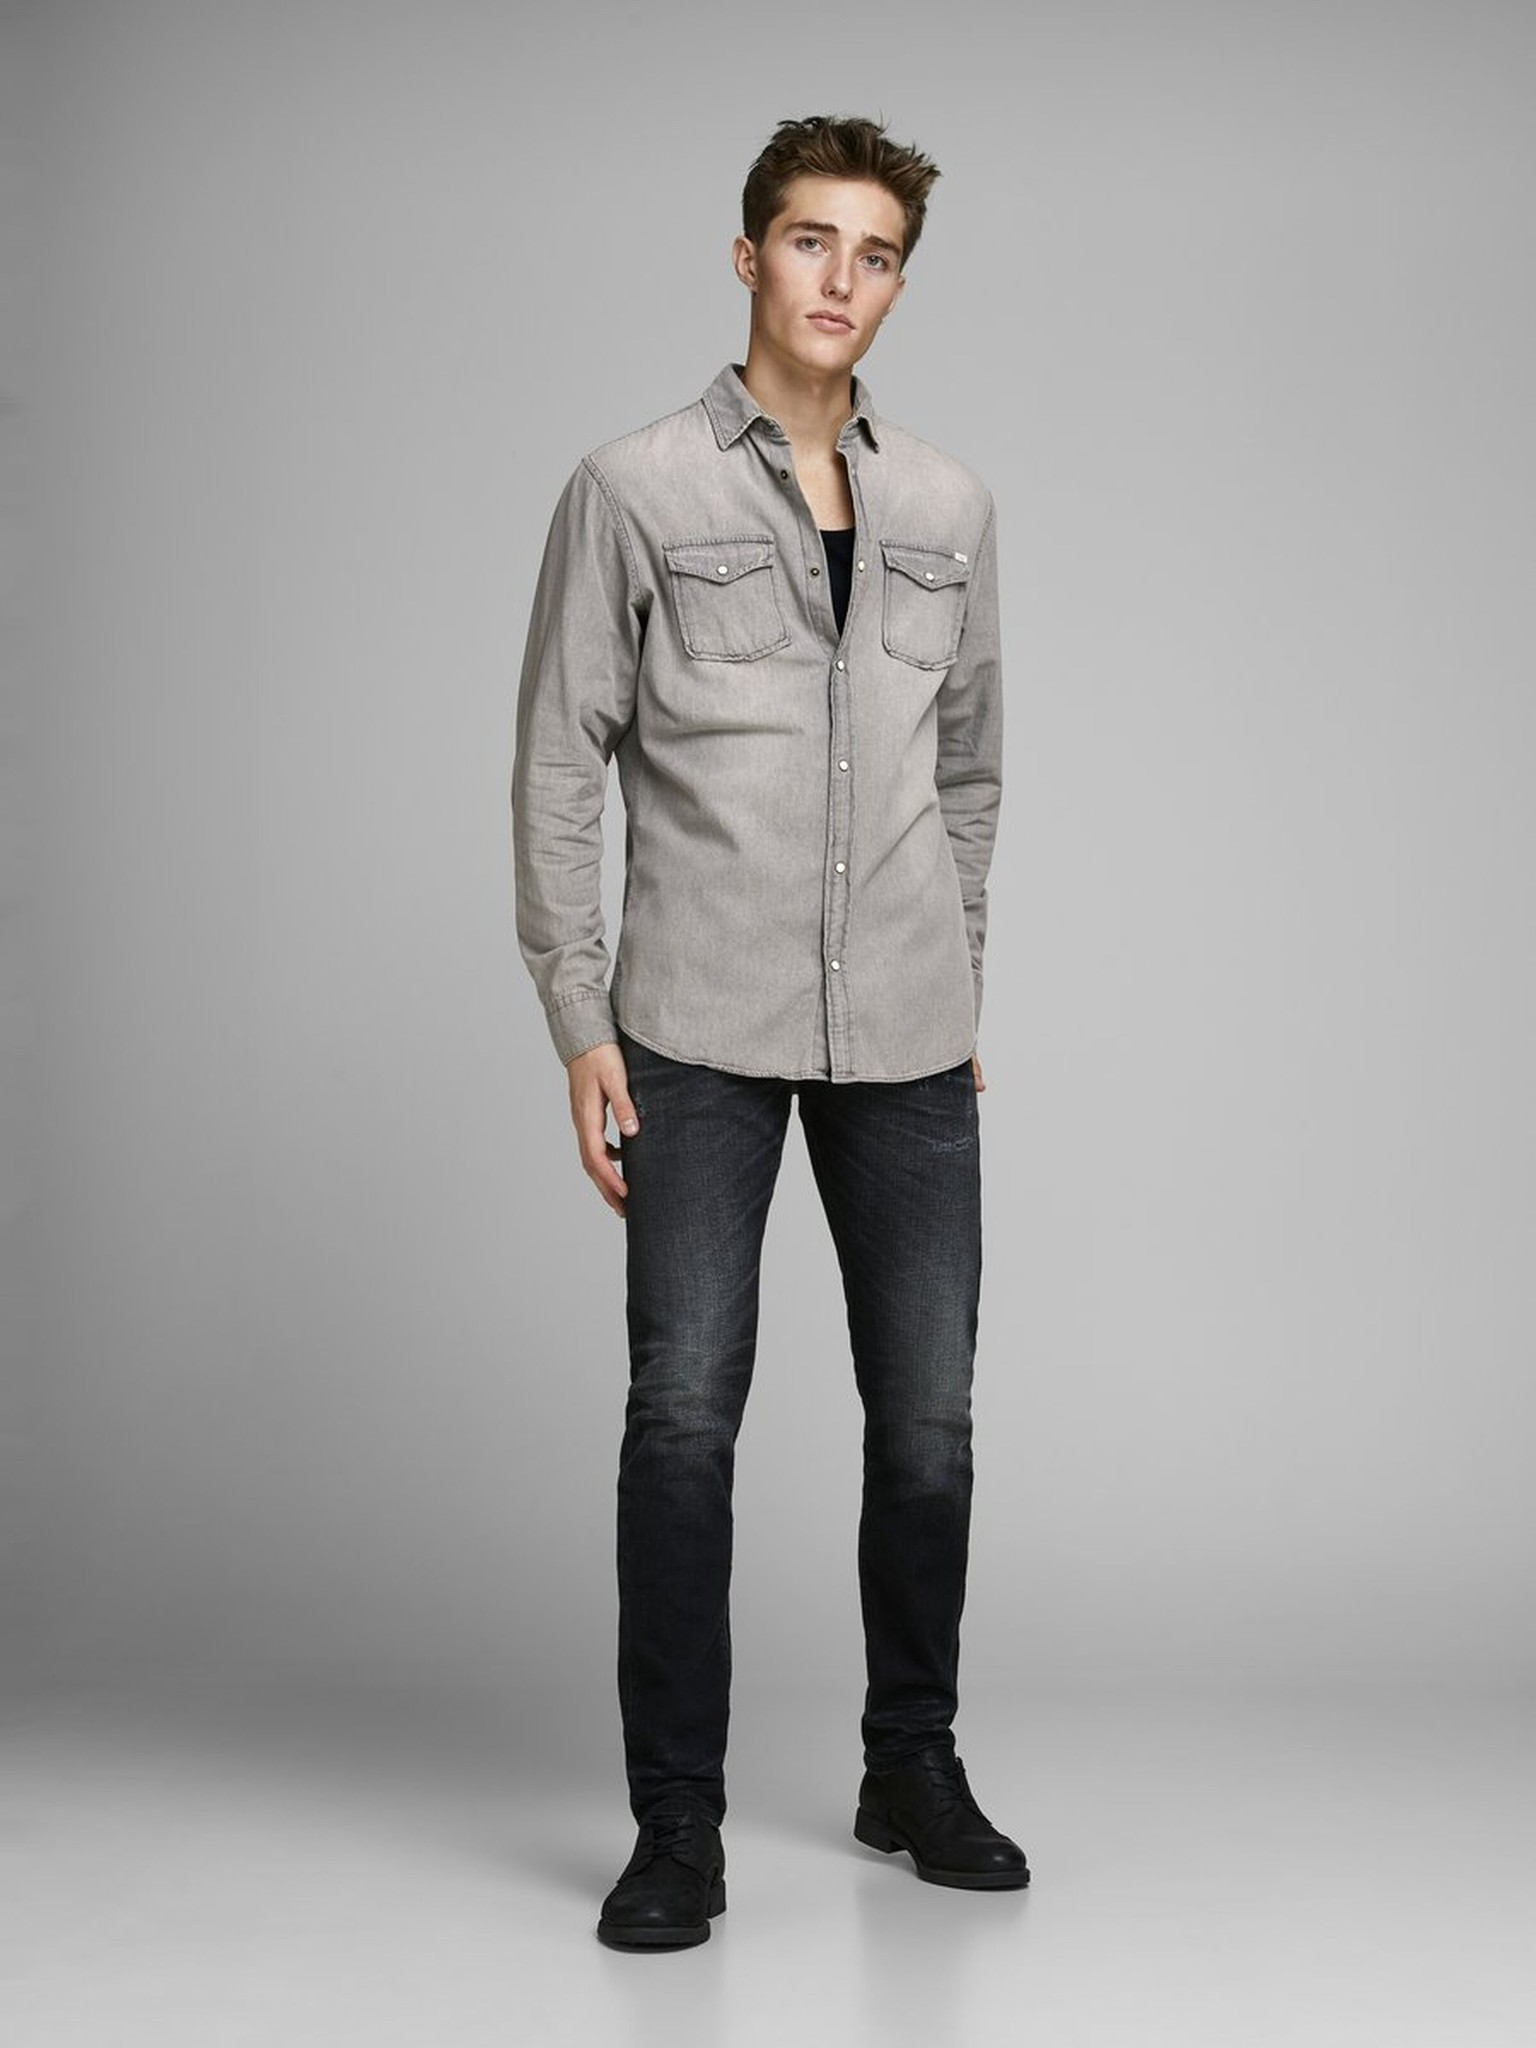 JACK & JONES indispensable chemise-3